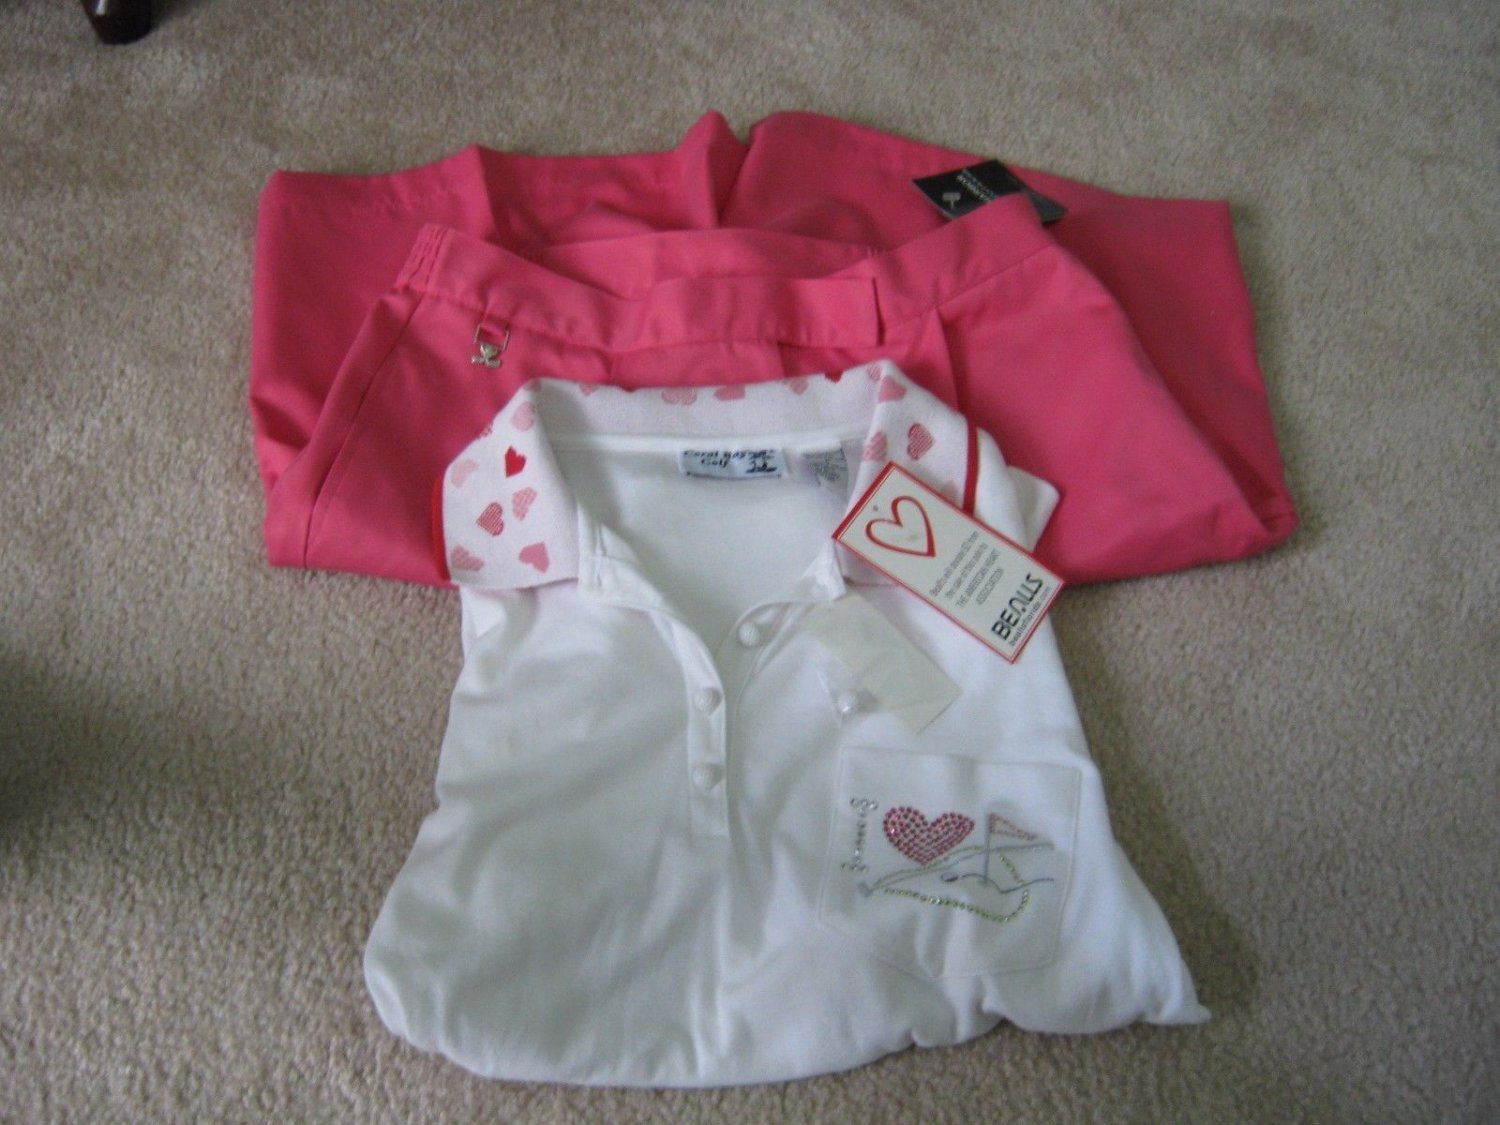 Sag Harbour Sport Shorts (Size 12) and Coral Bay Golf Short Sleeve Top (Size M)